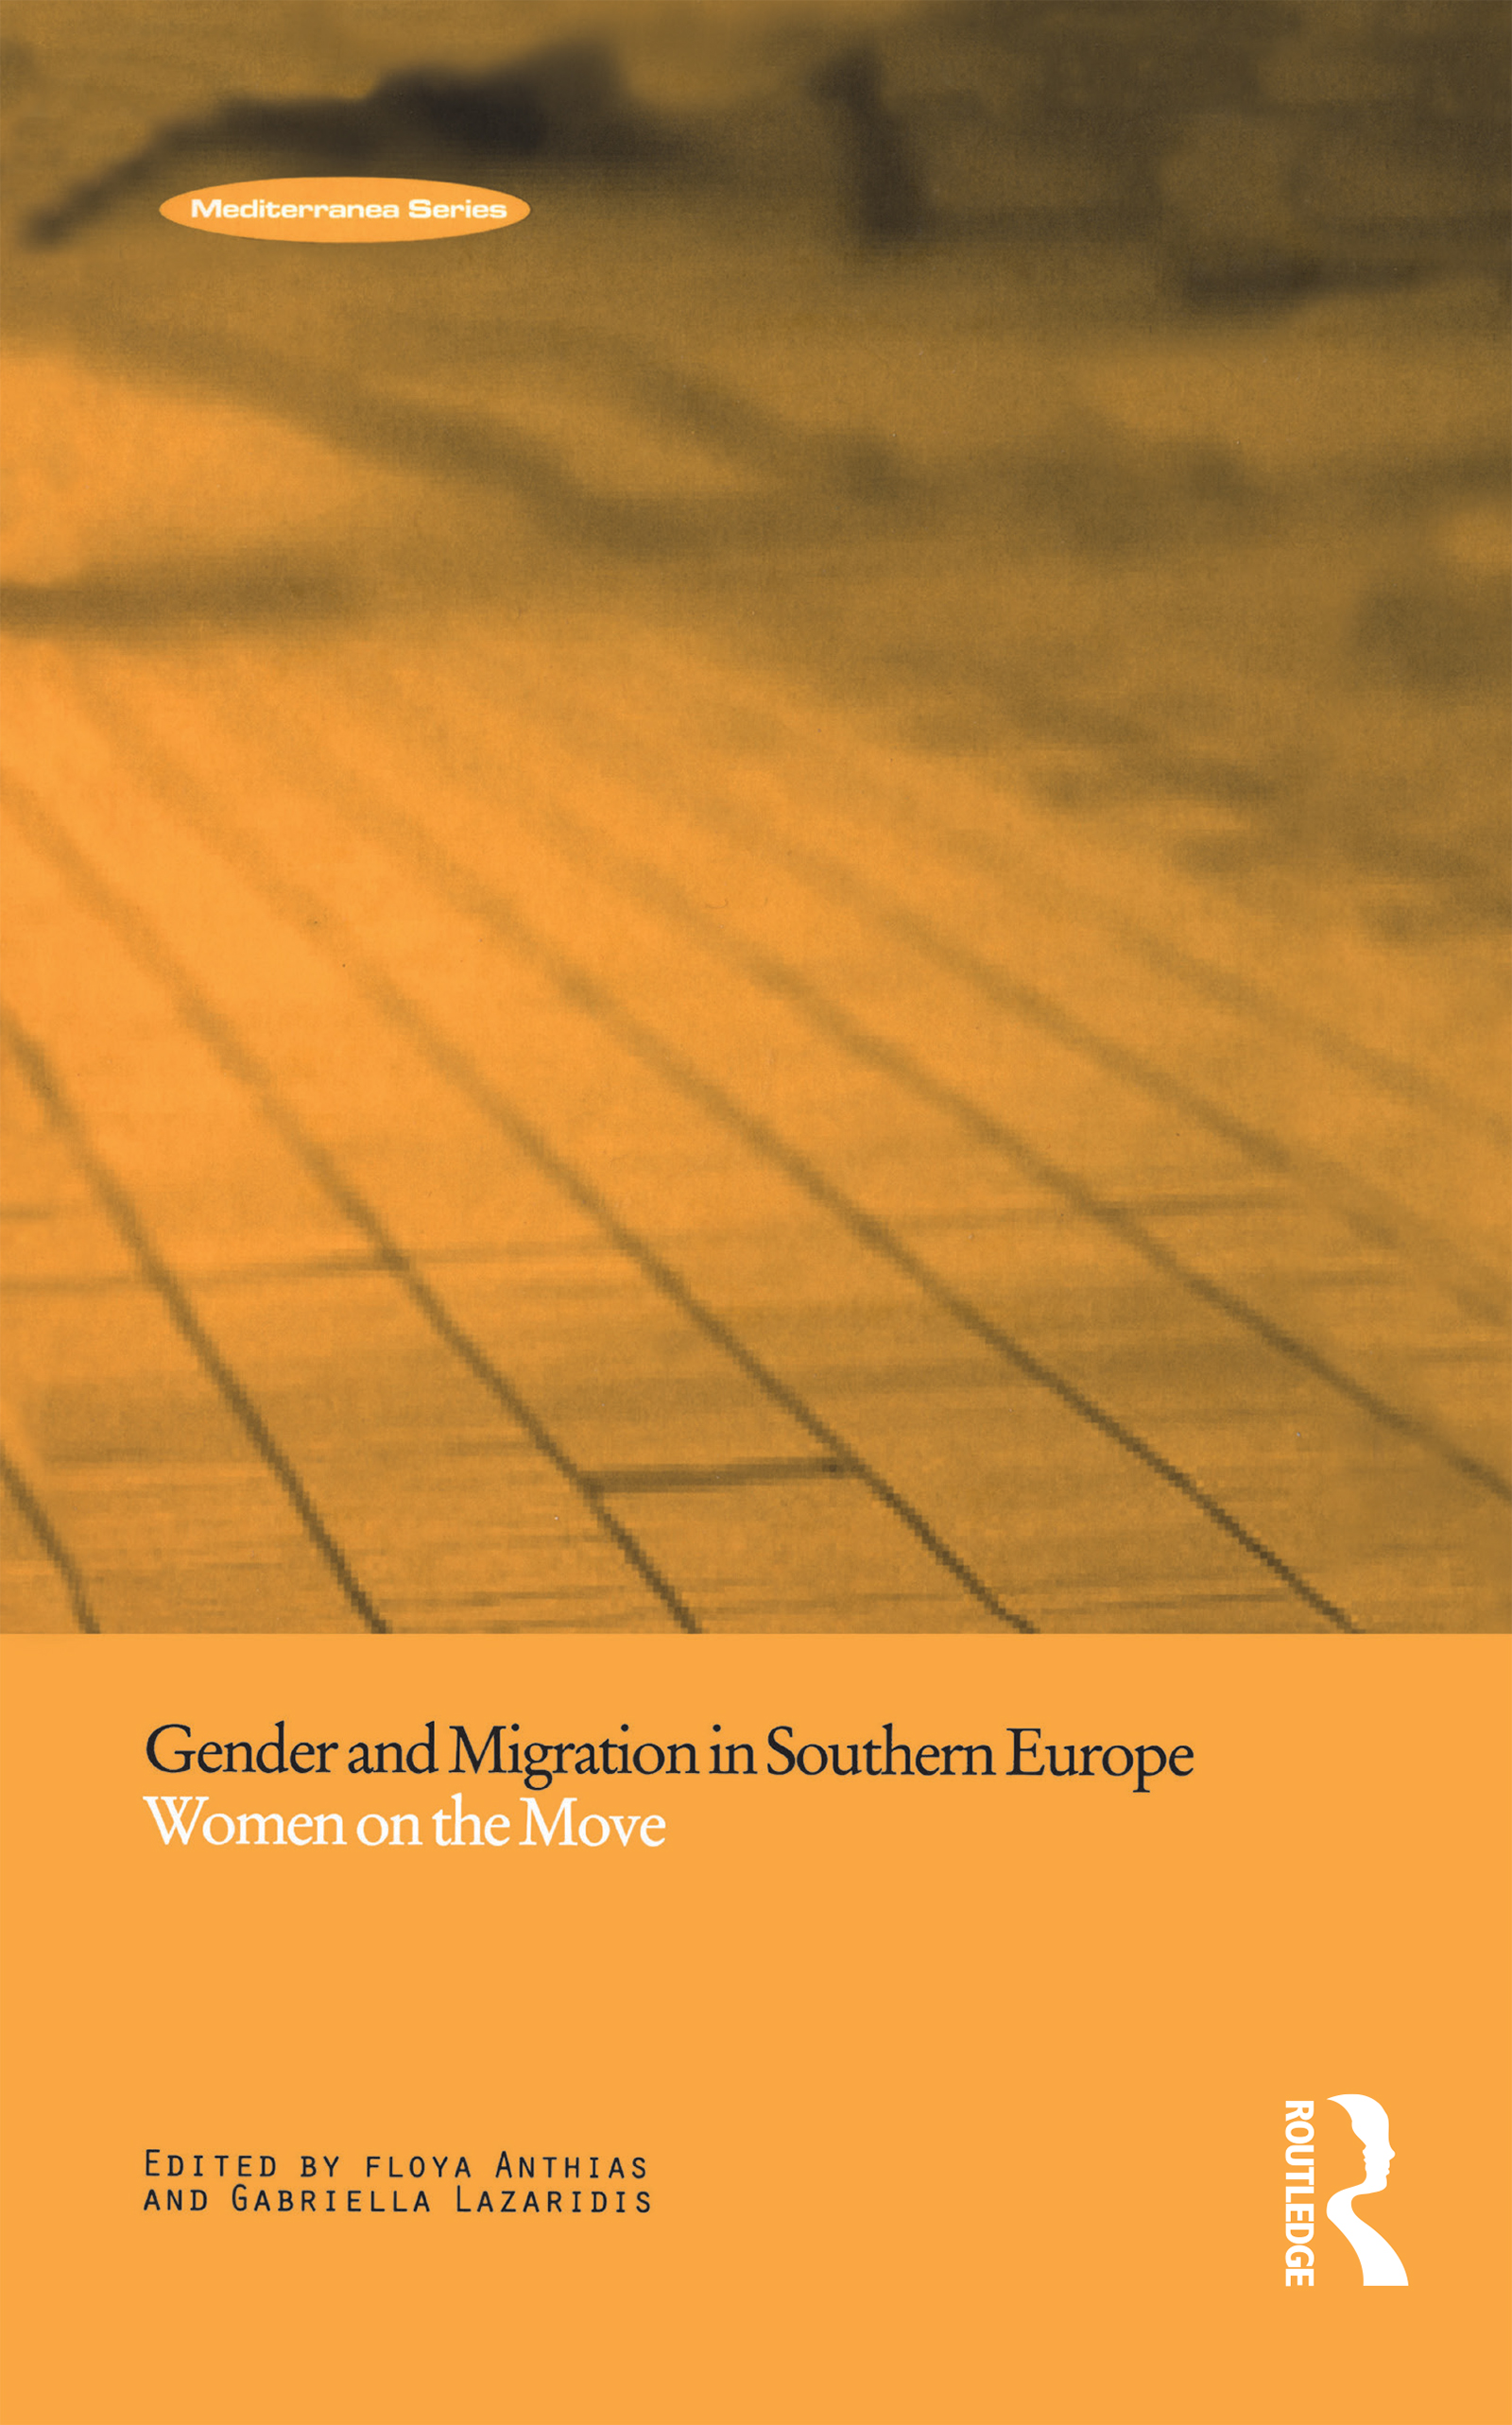 Gender and Migration in Southern Europe